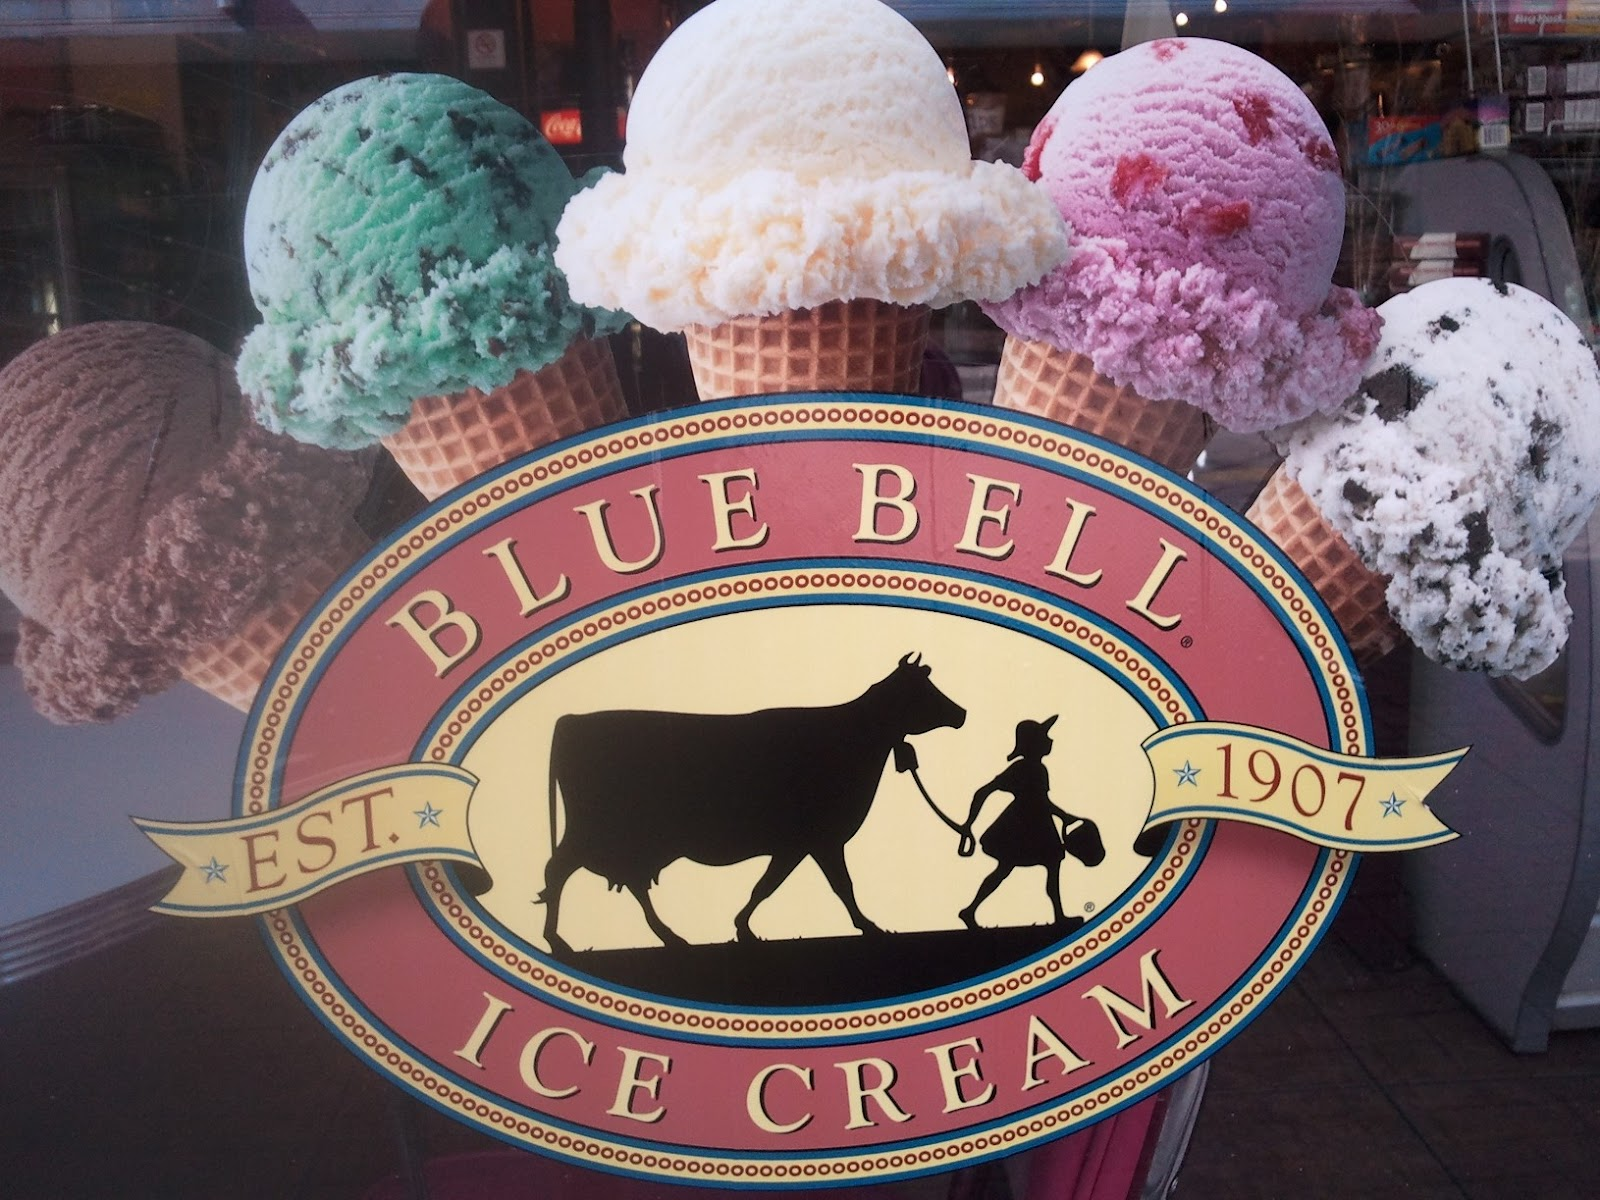 blue bell birthday cake ice cream foodie blue bell s birthday cake 1921